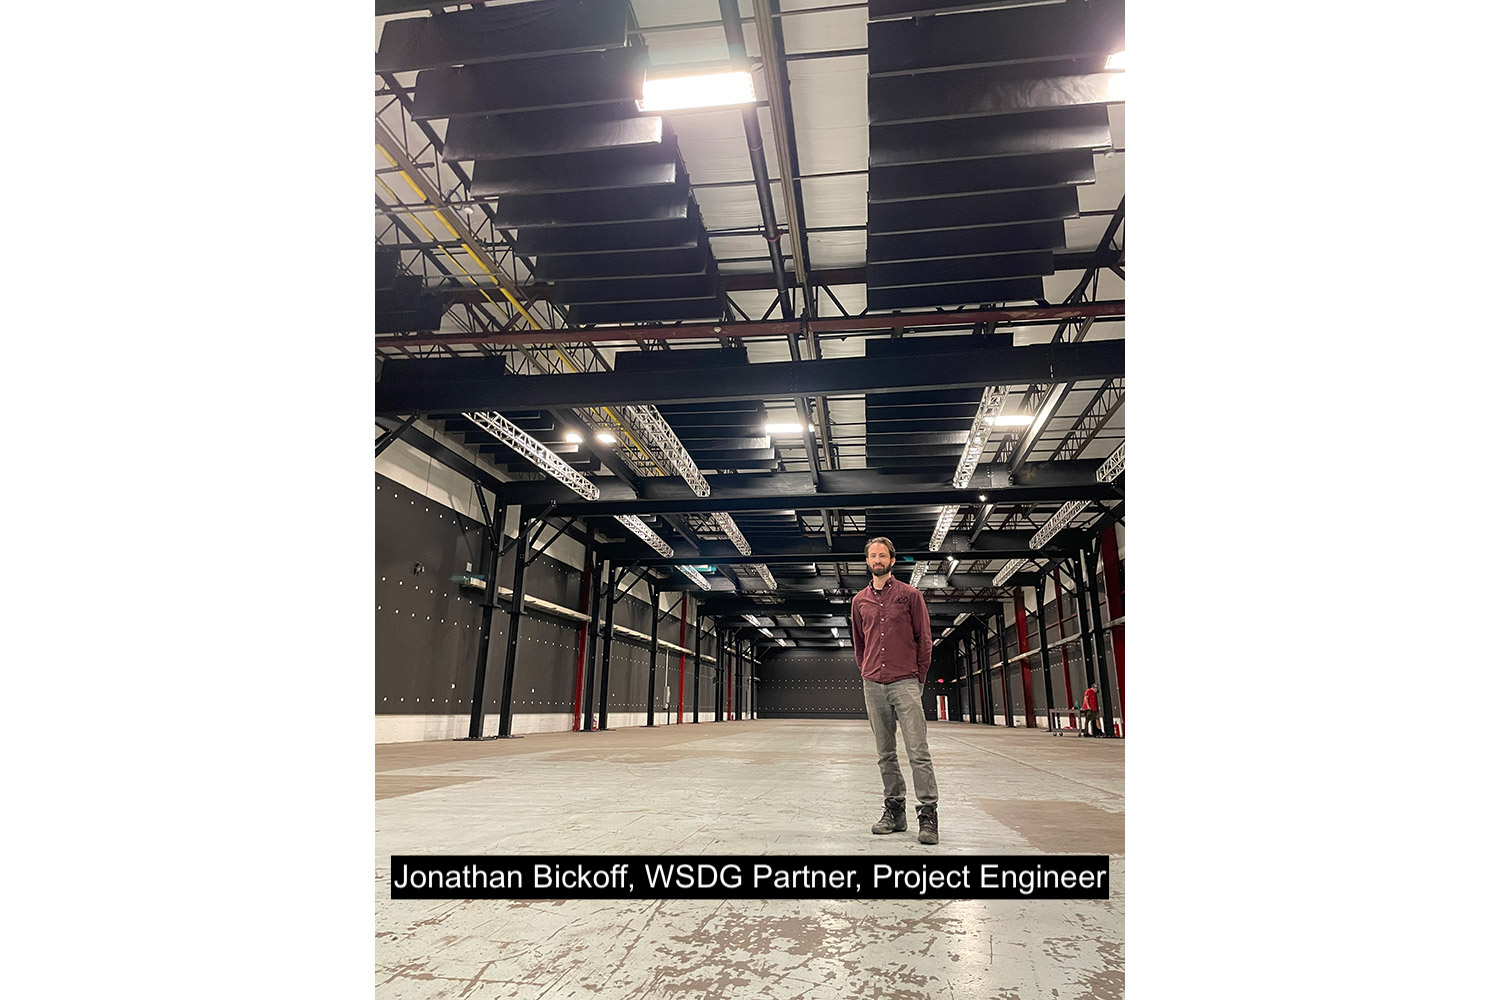 Jonathan Bickoff, WSDG Partner and Project Engineer, at the recently acoustically treated Upriver Studios.